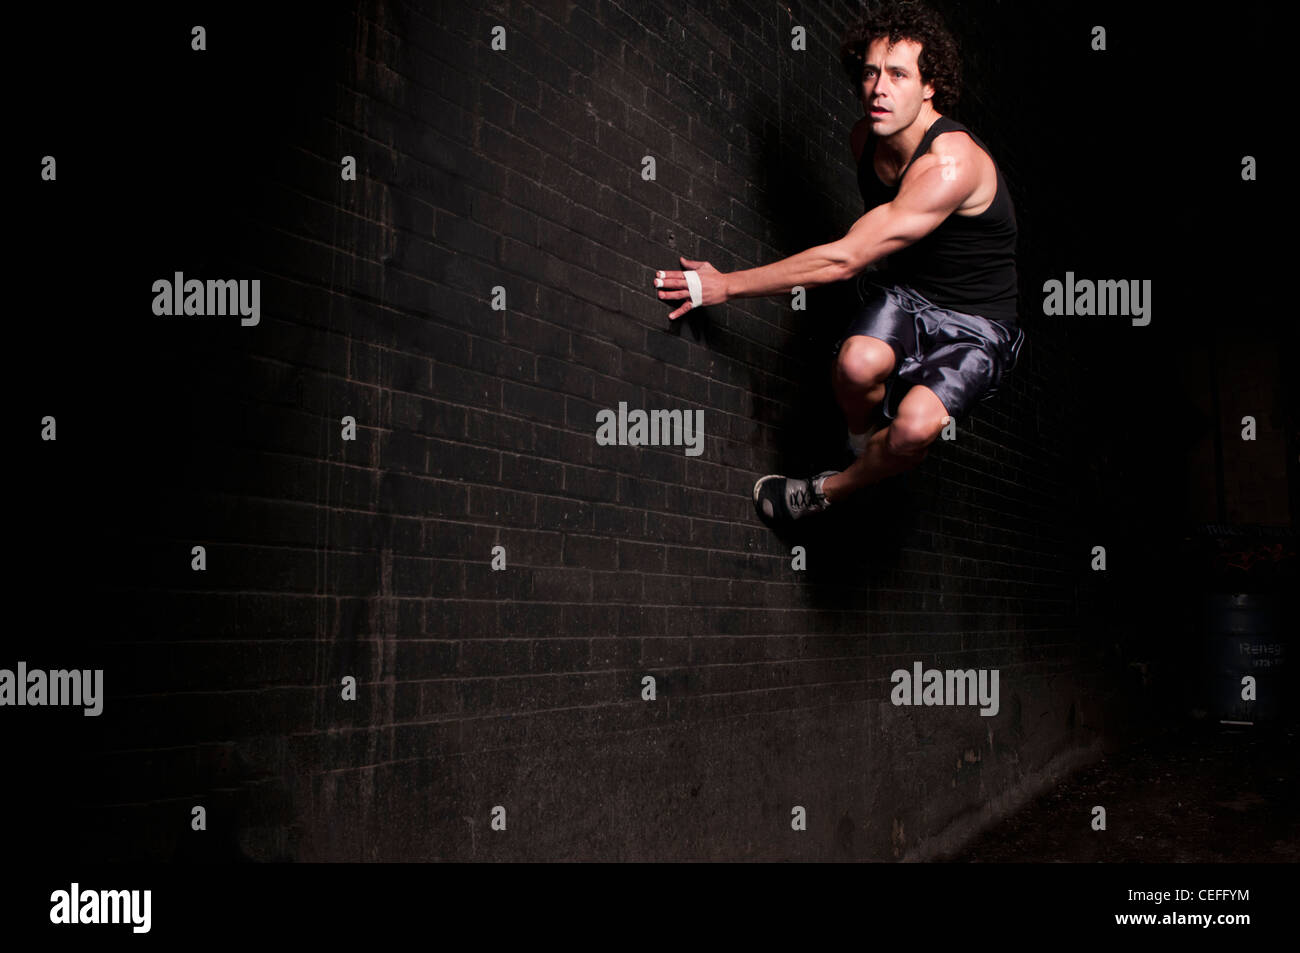 Runner bouncing off side of wall Stock Photo